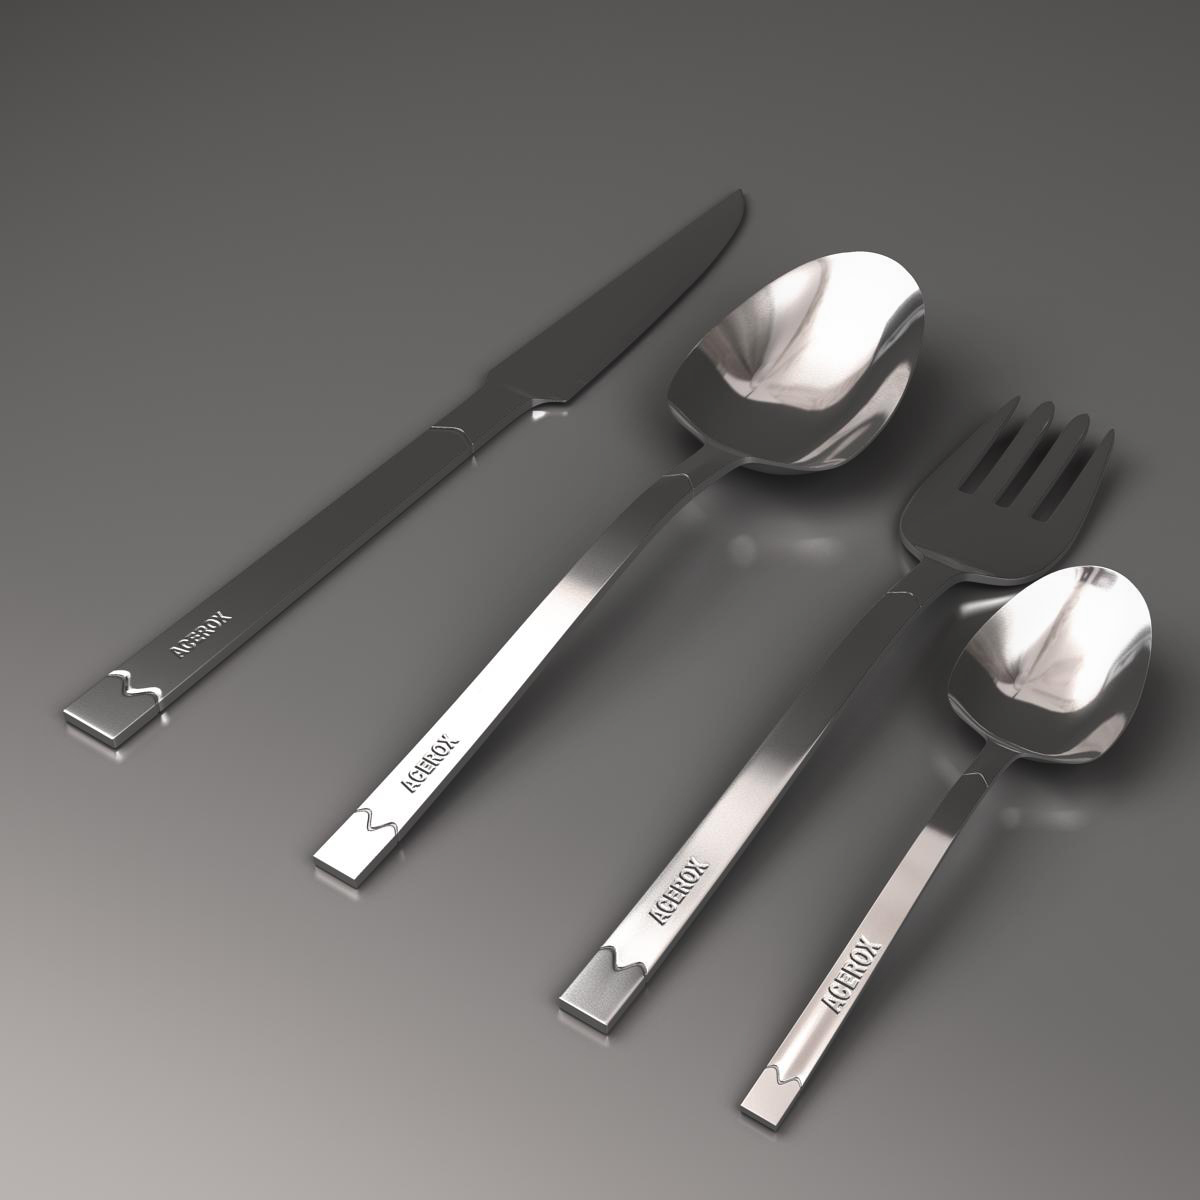 cutlery 3d model 3ds max fbx c4d ma mb obj 158962